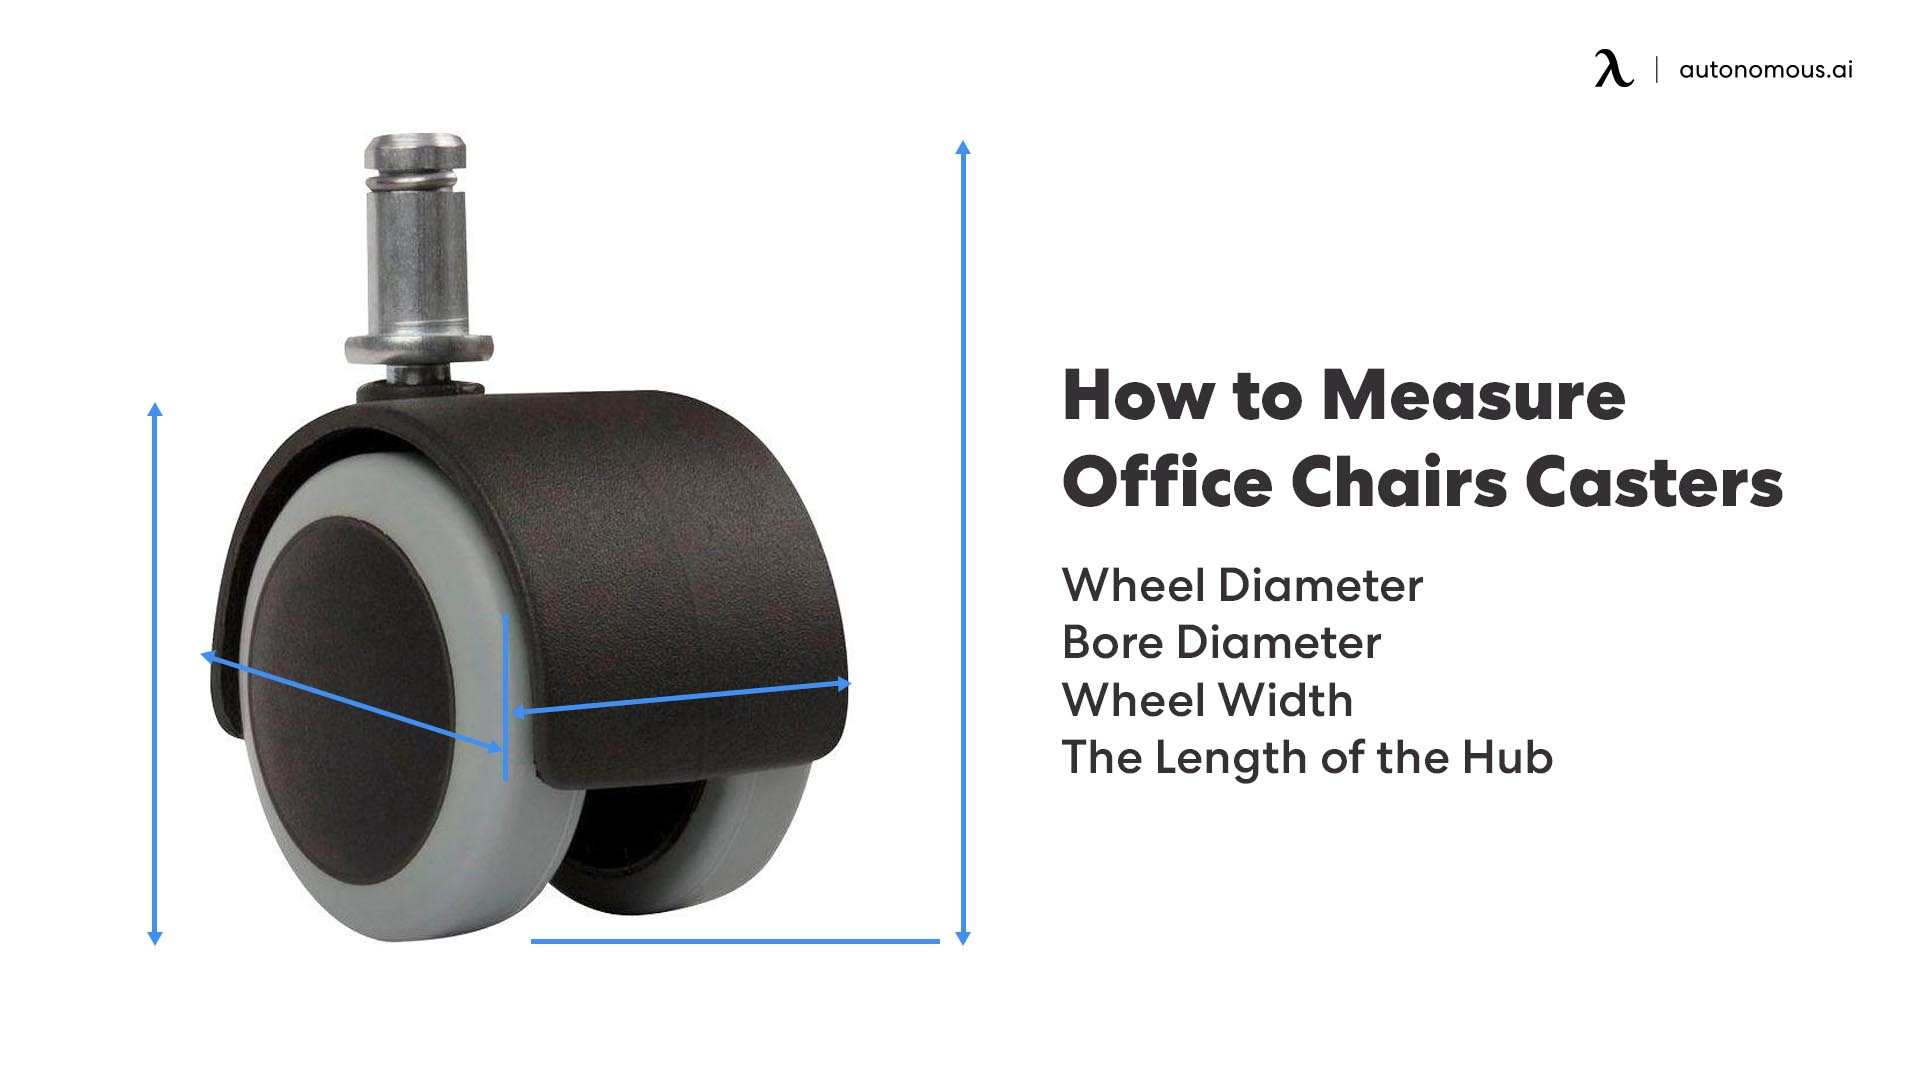 How to measure office chairs casters